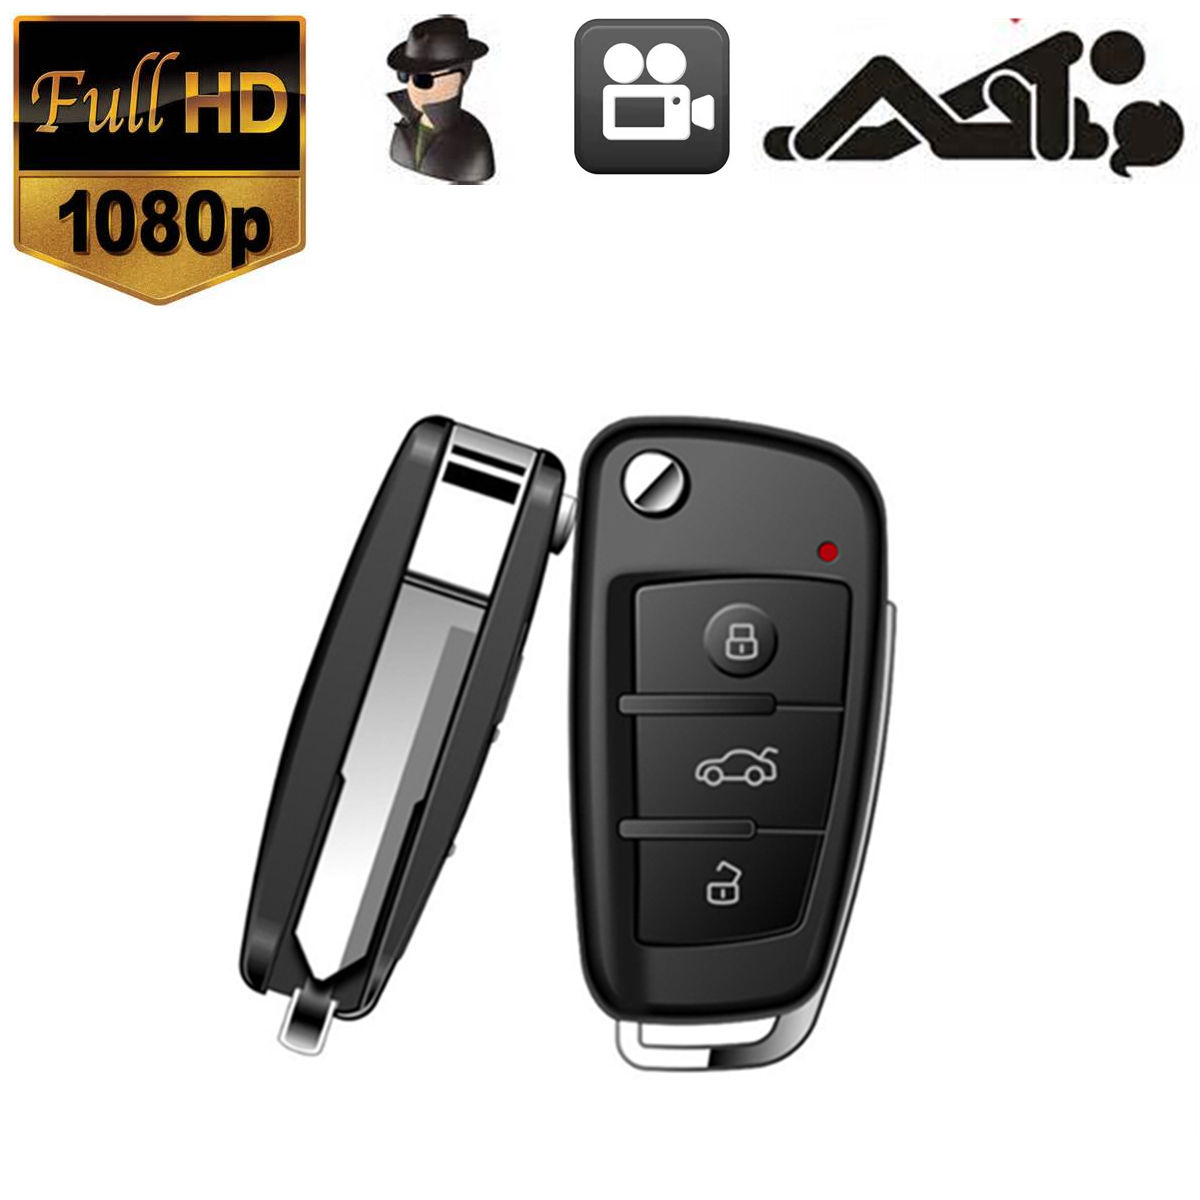 hd 1080p car key chain spy hidden camera dvr motion dectect digital night vision. Black Bedroom Furniture Sets. Home Design Ideas